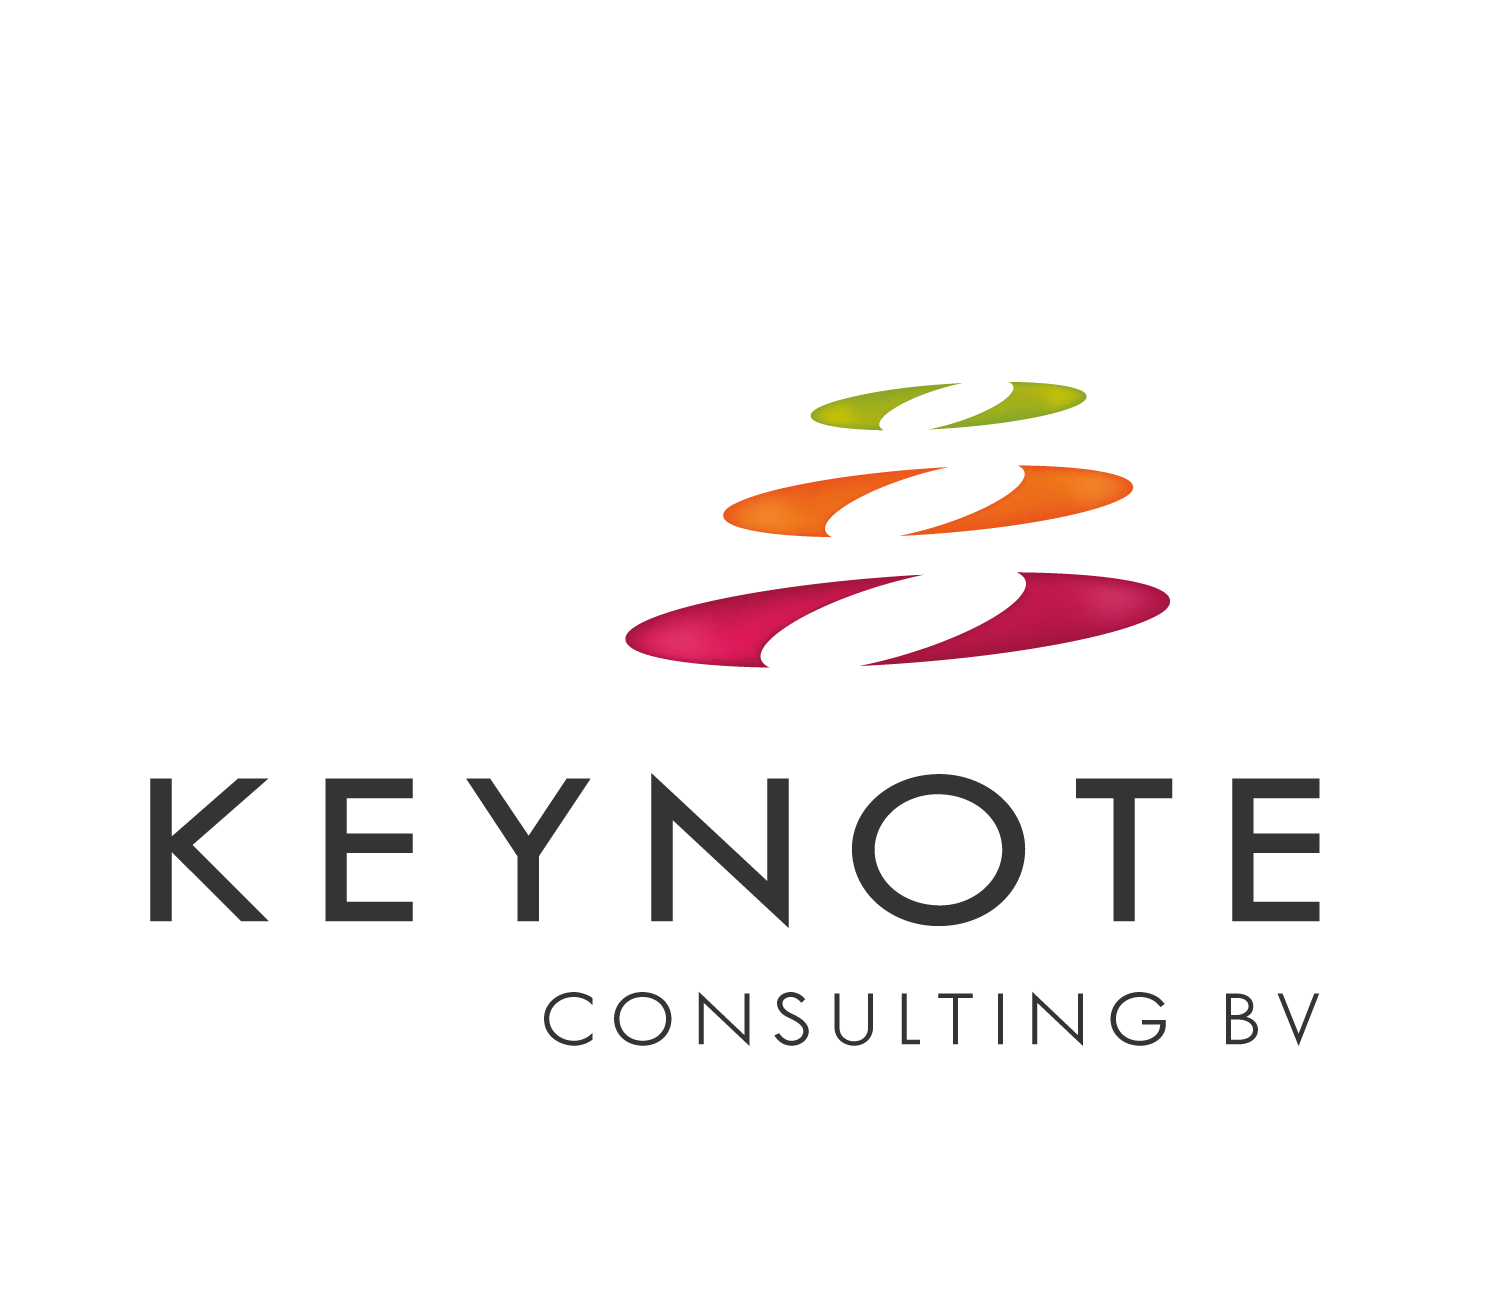 Keynote Consulting